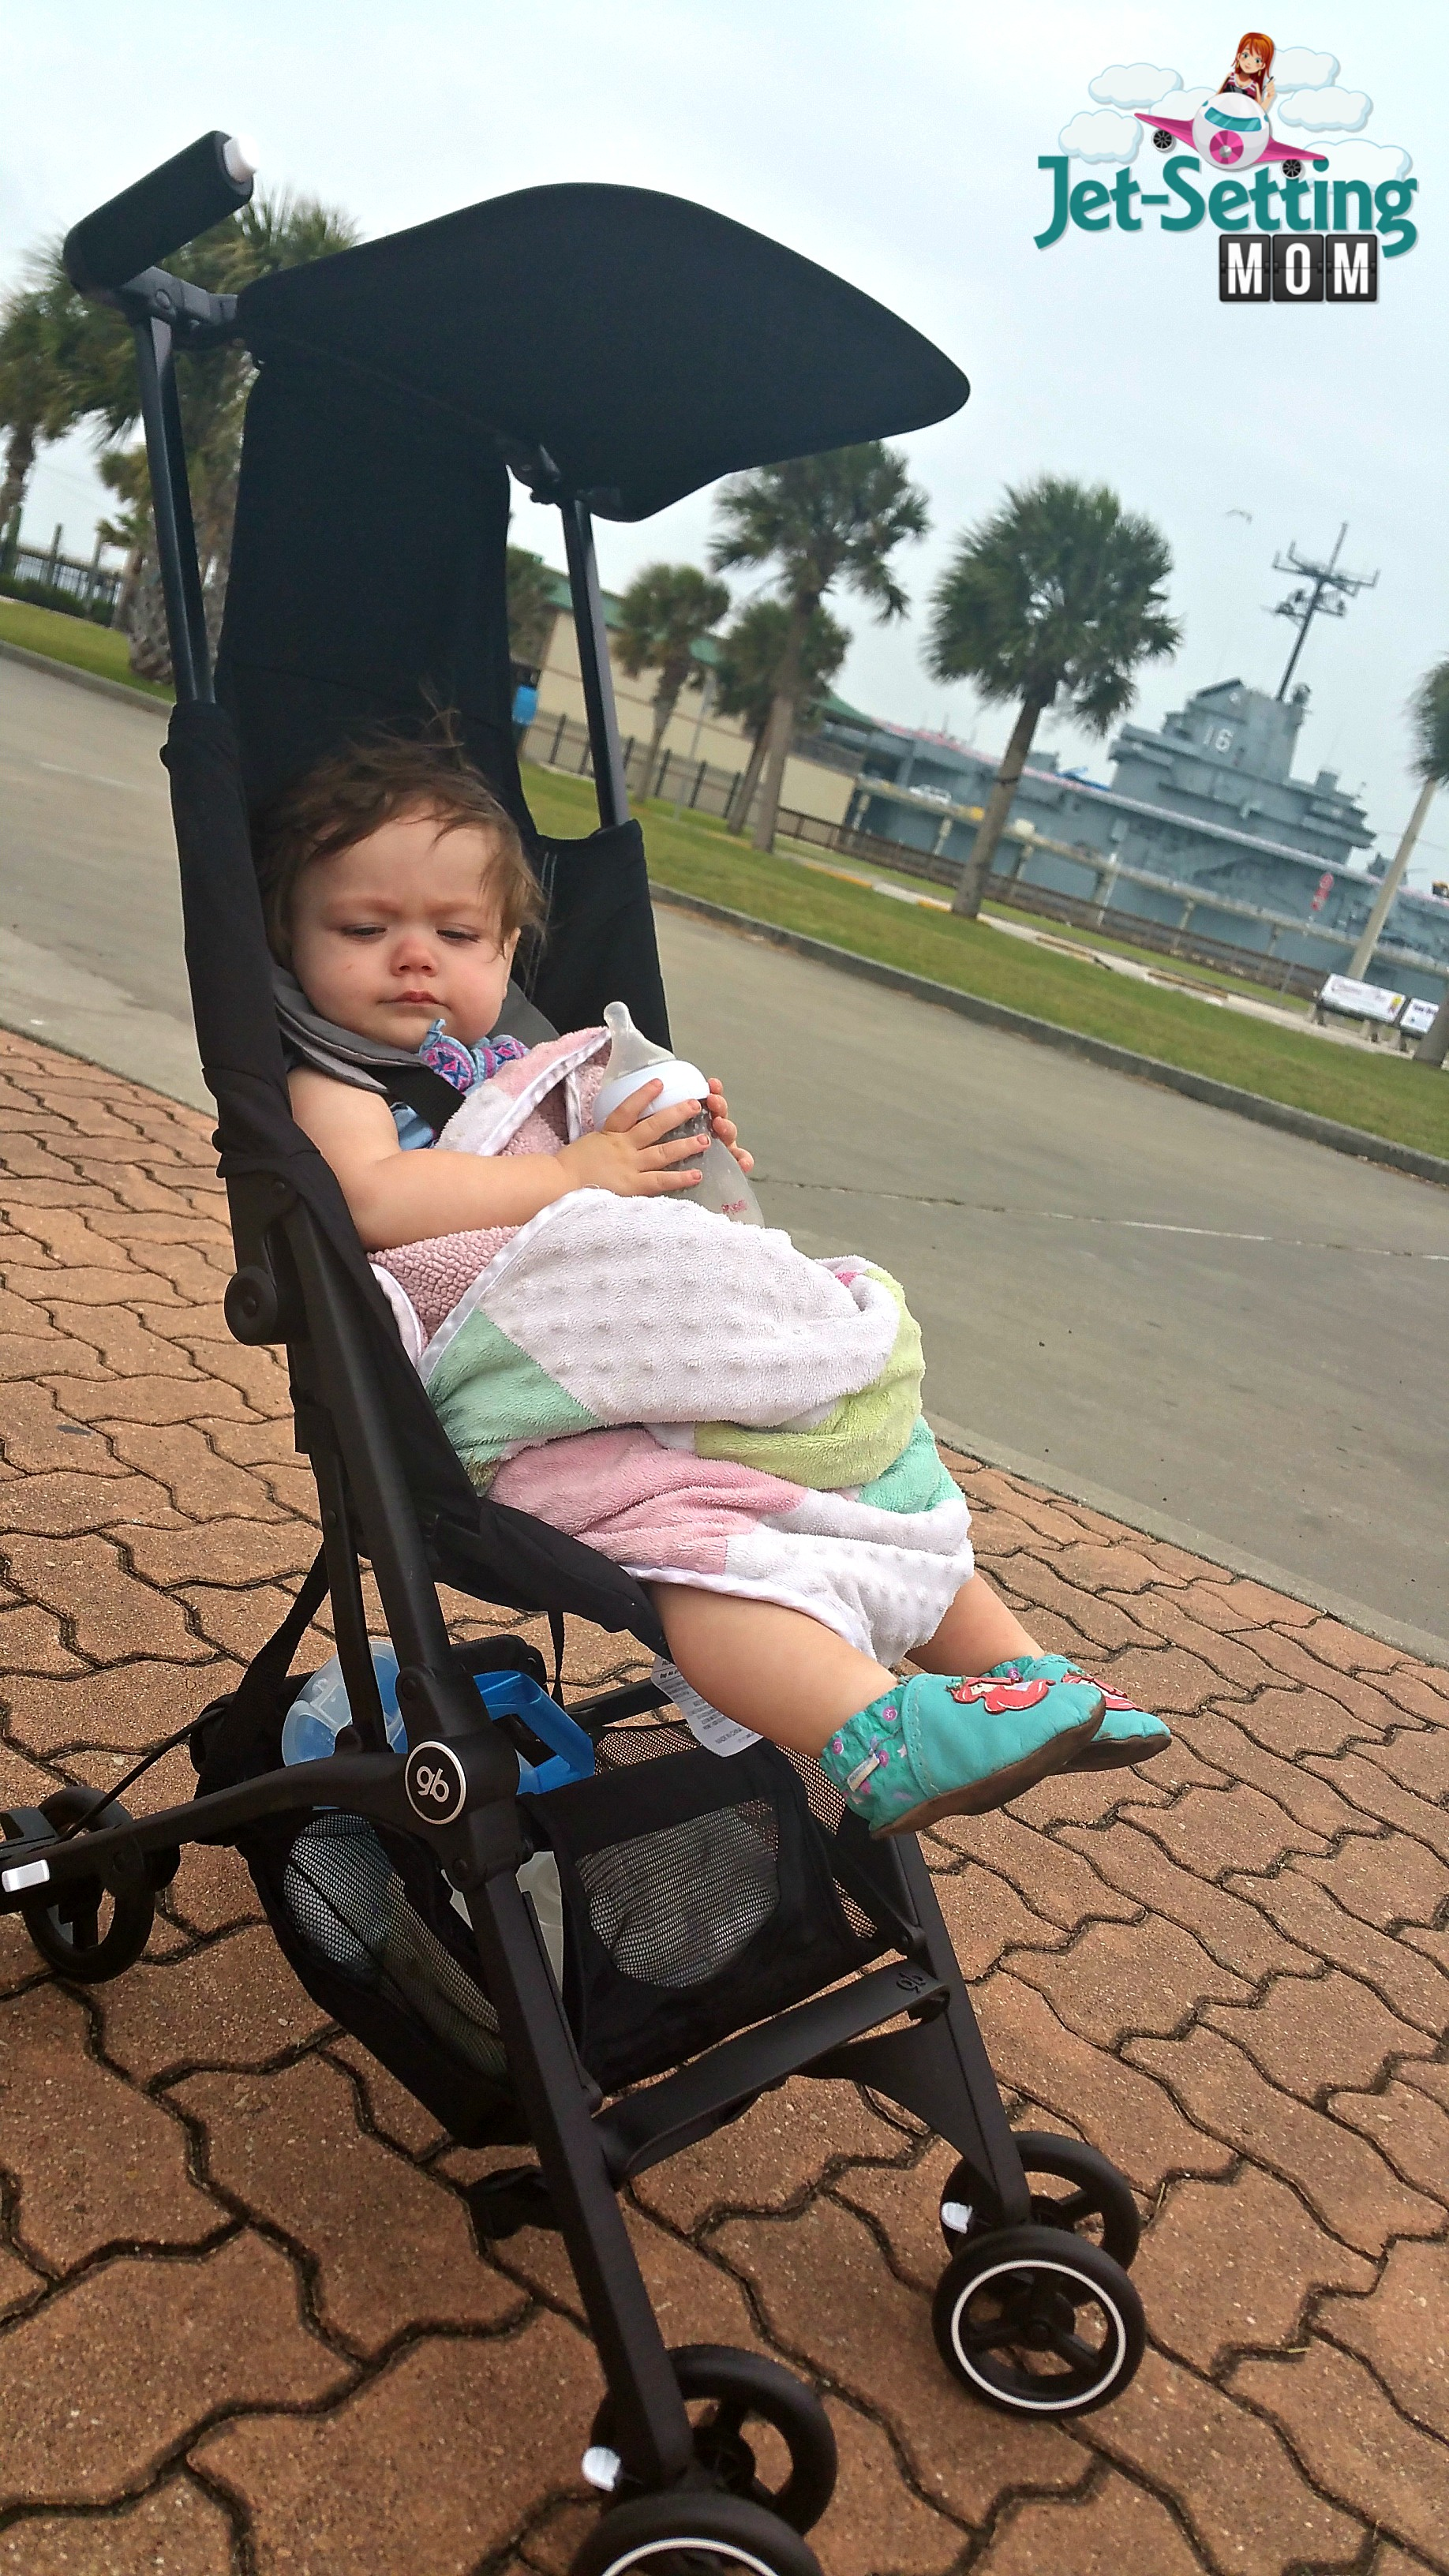 gb pockit stroller is great for travel! #ic #ad #gbpockit